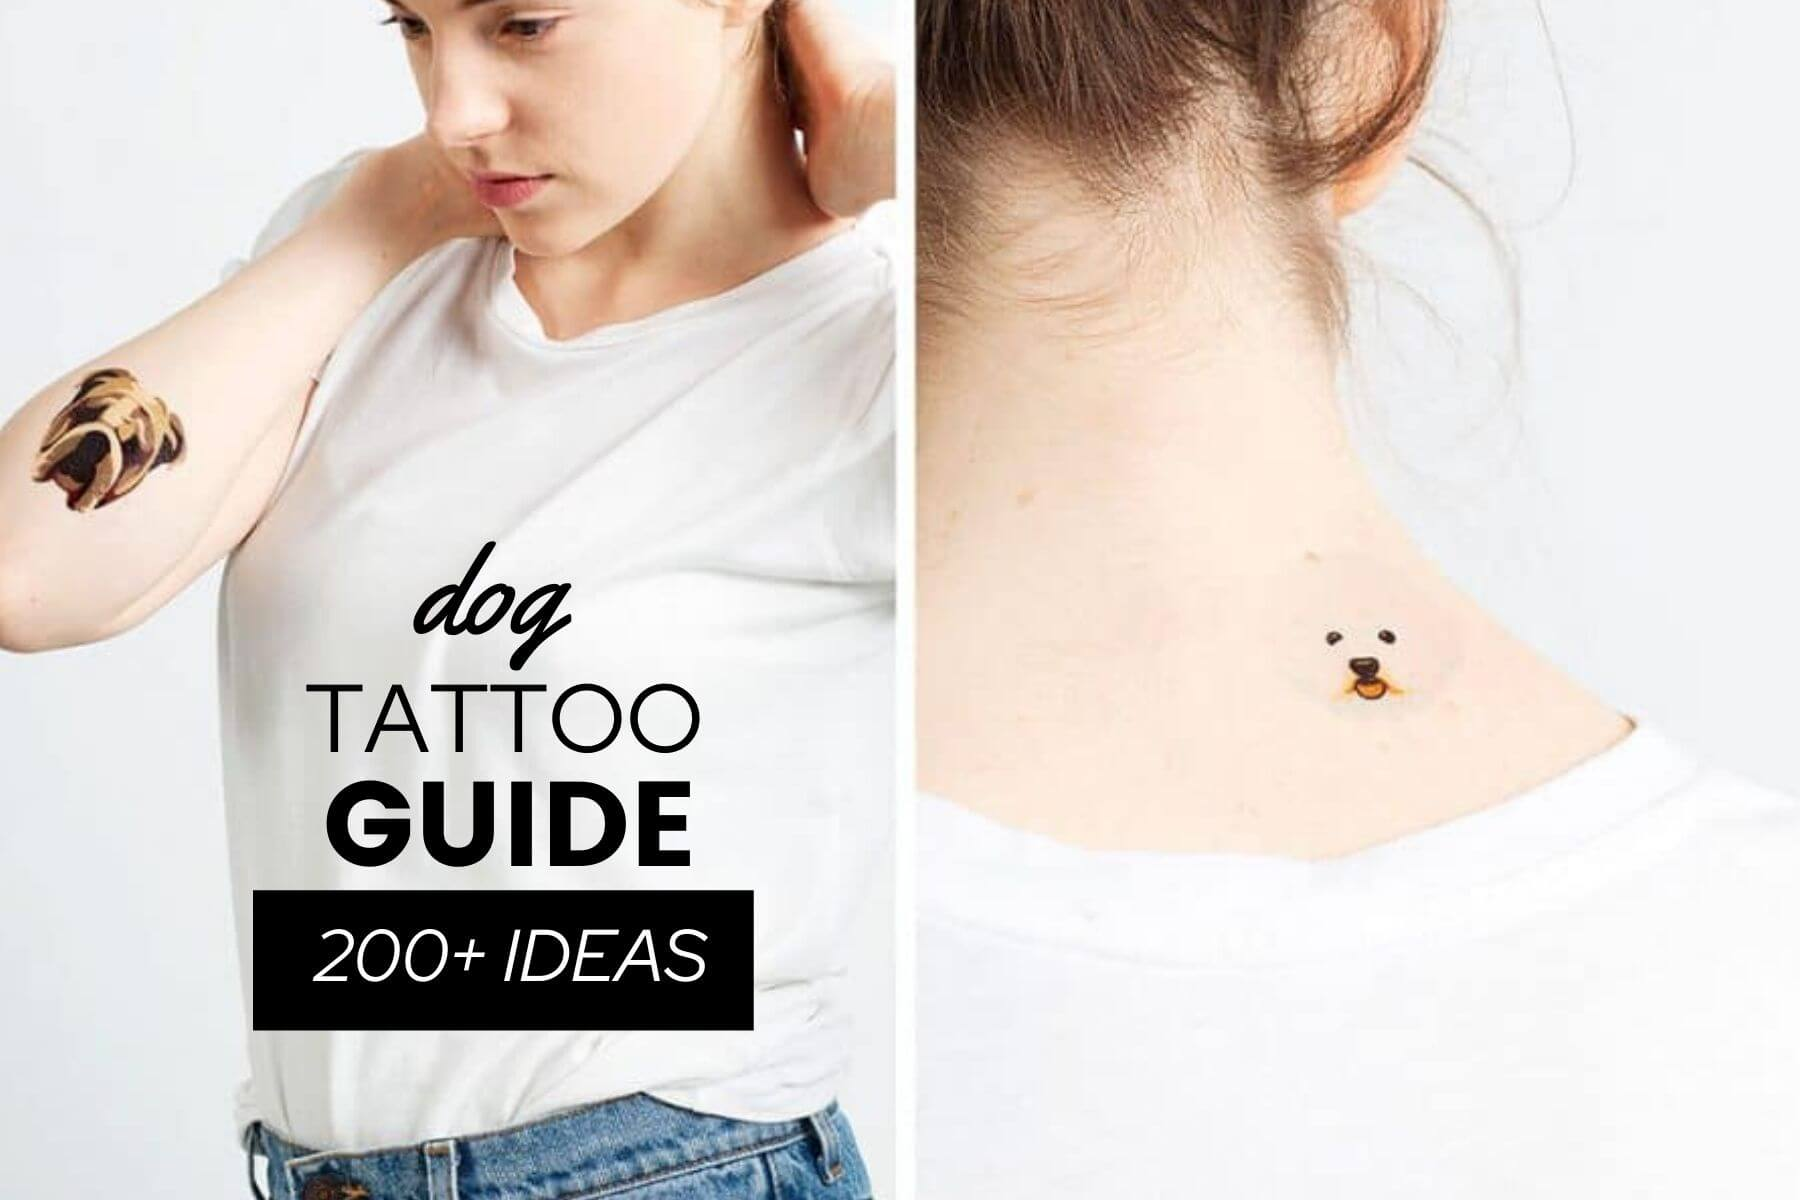 Dog Tattoo Guide With 200 Ideas That Are Actually Good Canine Bible